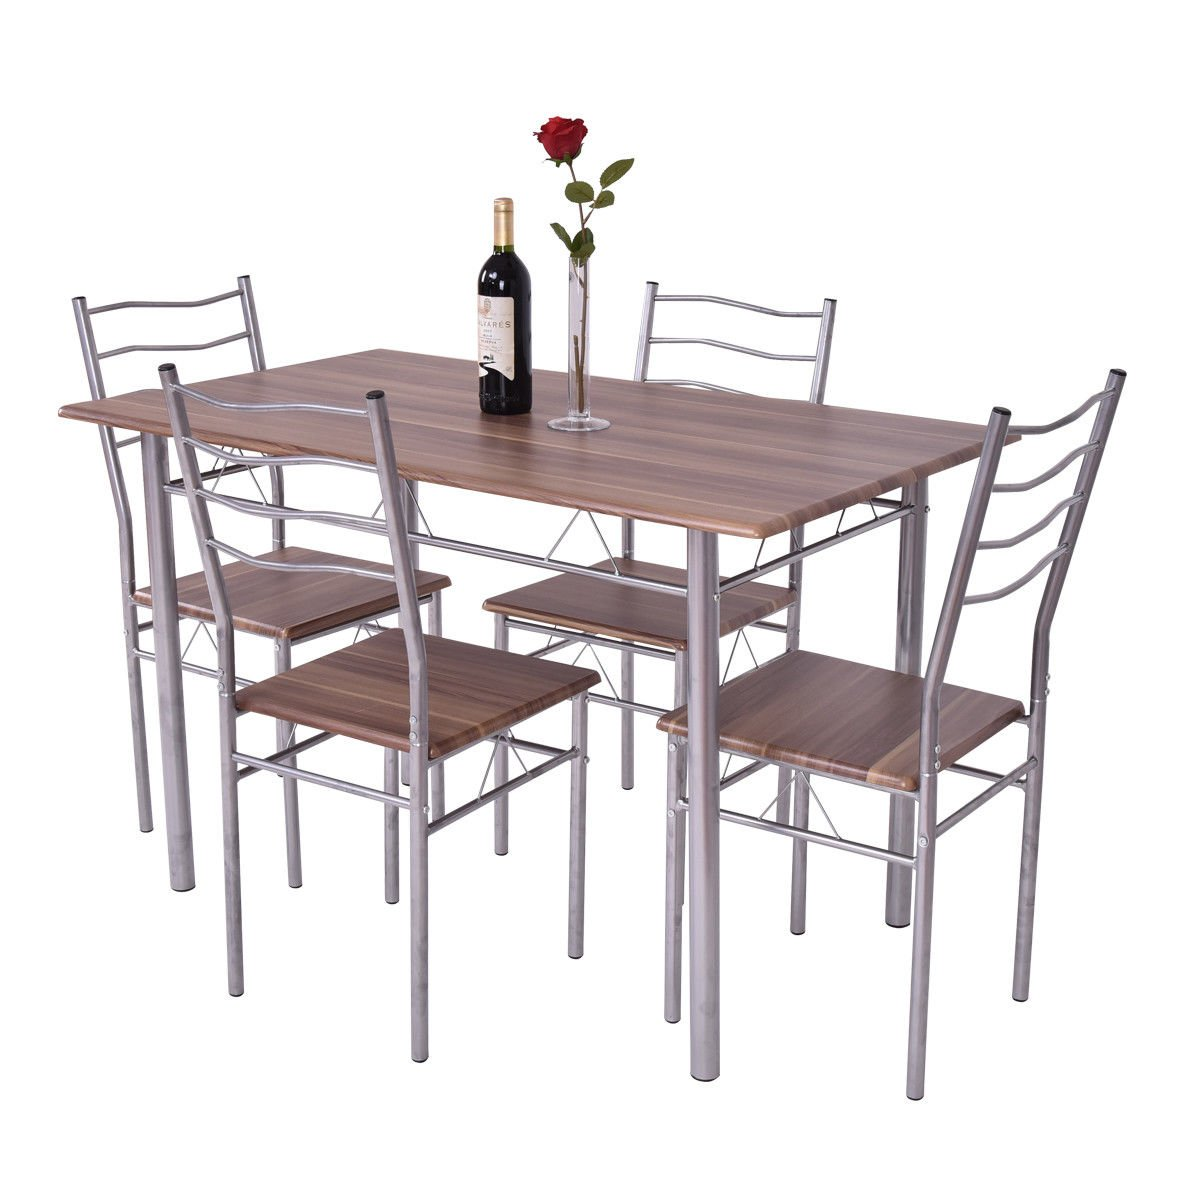 Beau Amazon.com   Giantex Modern 5 Piece Dining Table Set For 4 Chairs Wood  Metal Kitchen Breakfast Furniture (Shallow Walnut)   Table U0026 Chair Sets